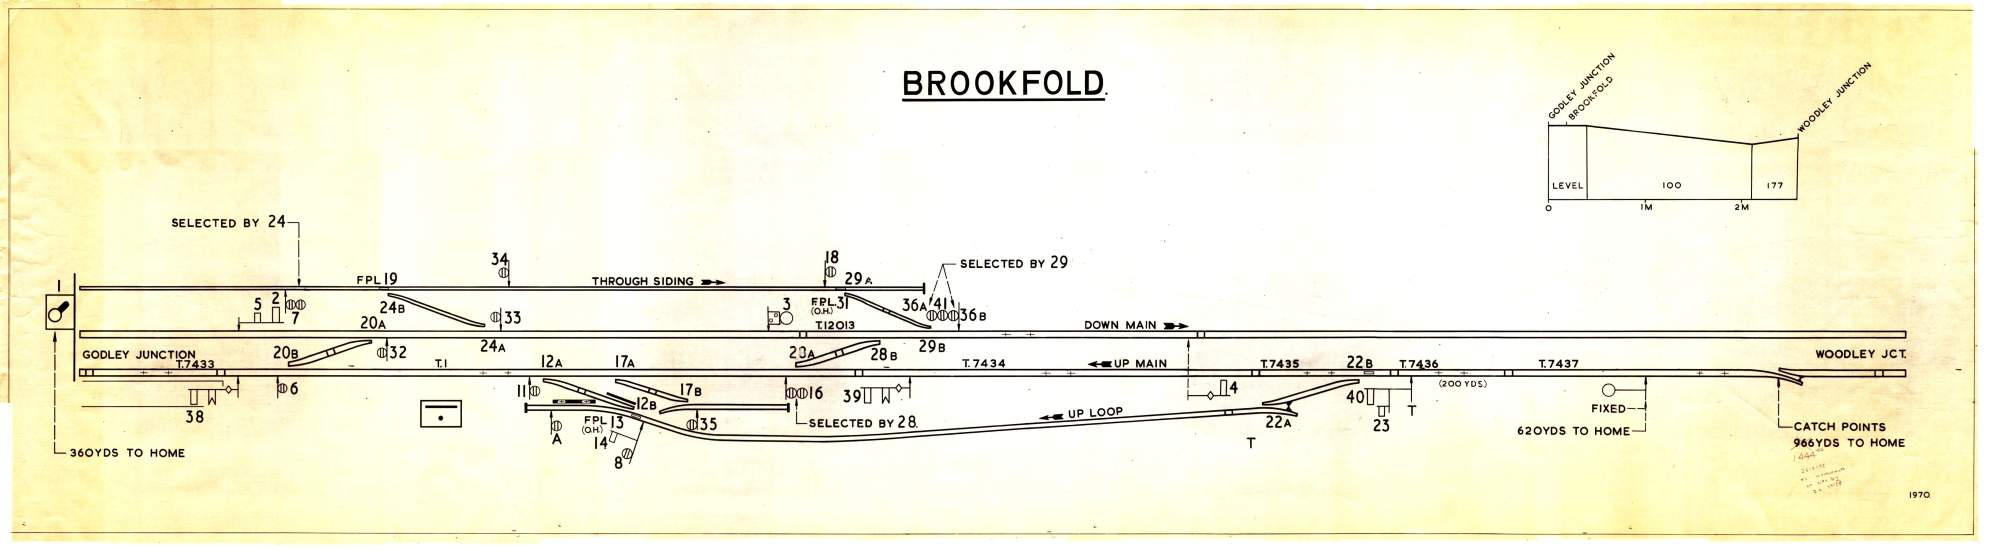 hight resolution of brookfold sbd